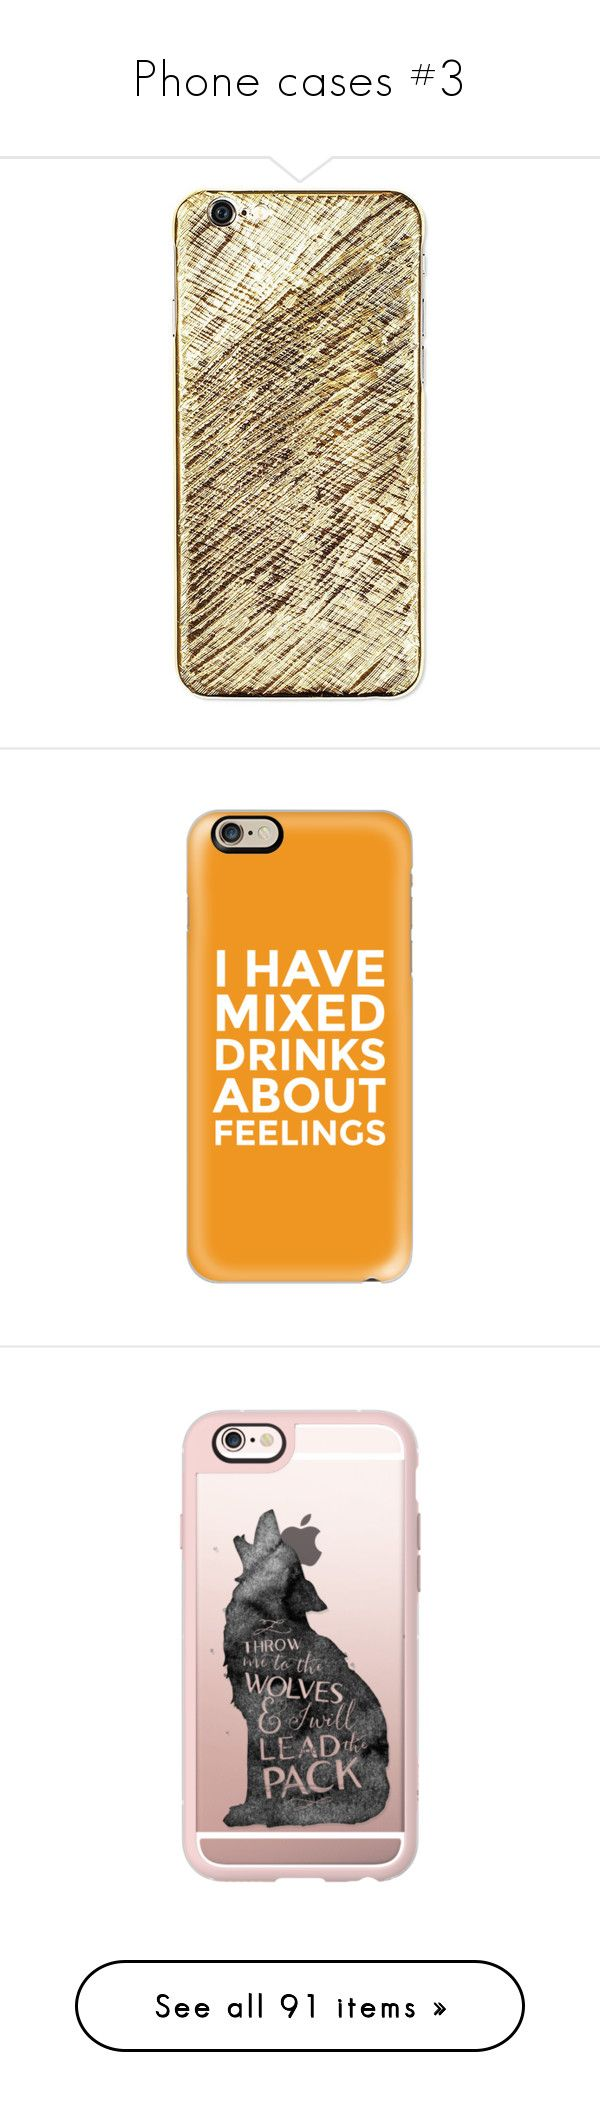 """""""Phone cases #3"""" by moon-and-back-babe123 ❤ liked on Polyvore featuring men's fashion, men's accessories, men's tech accessories, gold, mens wallet iphone case, accessories, tech accessories, iphone case, iphone cover case and clear iphone case"""